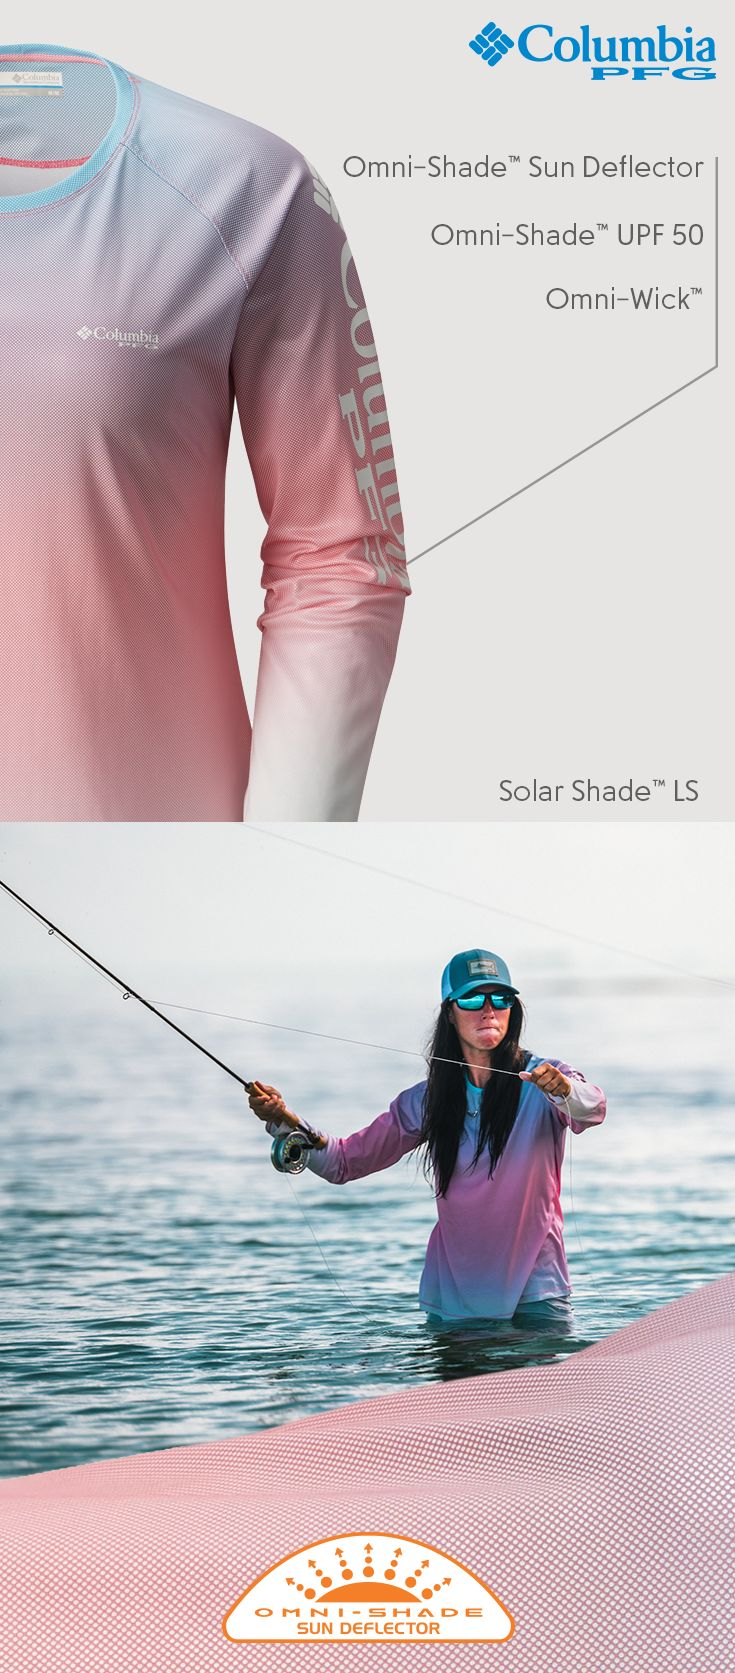 Reel in a full day's comfort. Our Woman's Solar Shade™ LS shirt is tested tough to keep you cool, dry and protected so you can stay focused on the matters at hand.